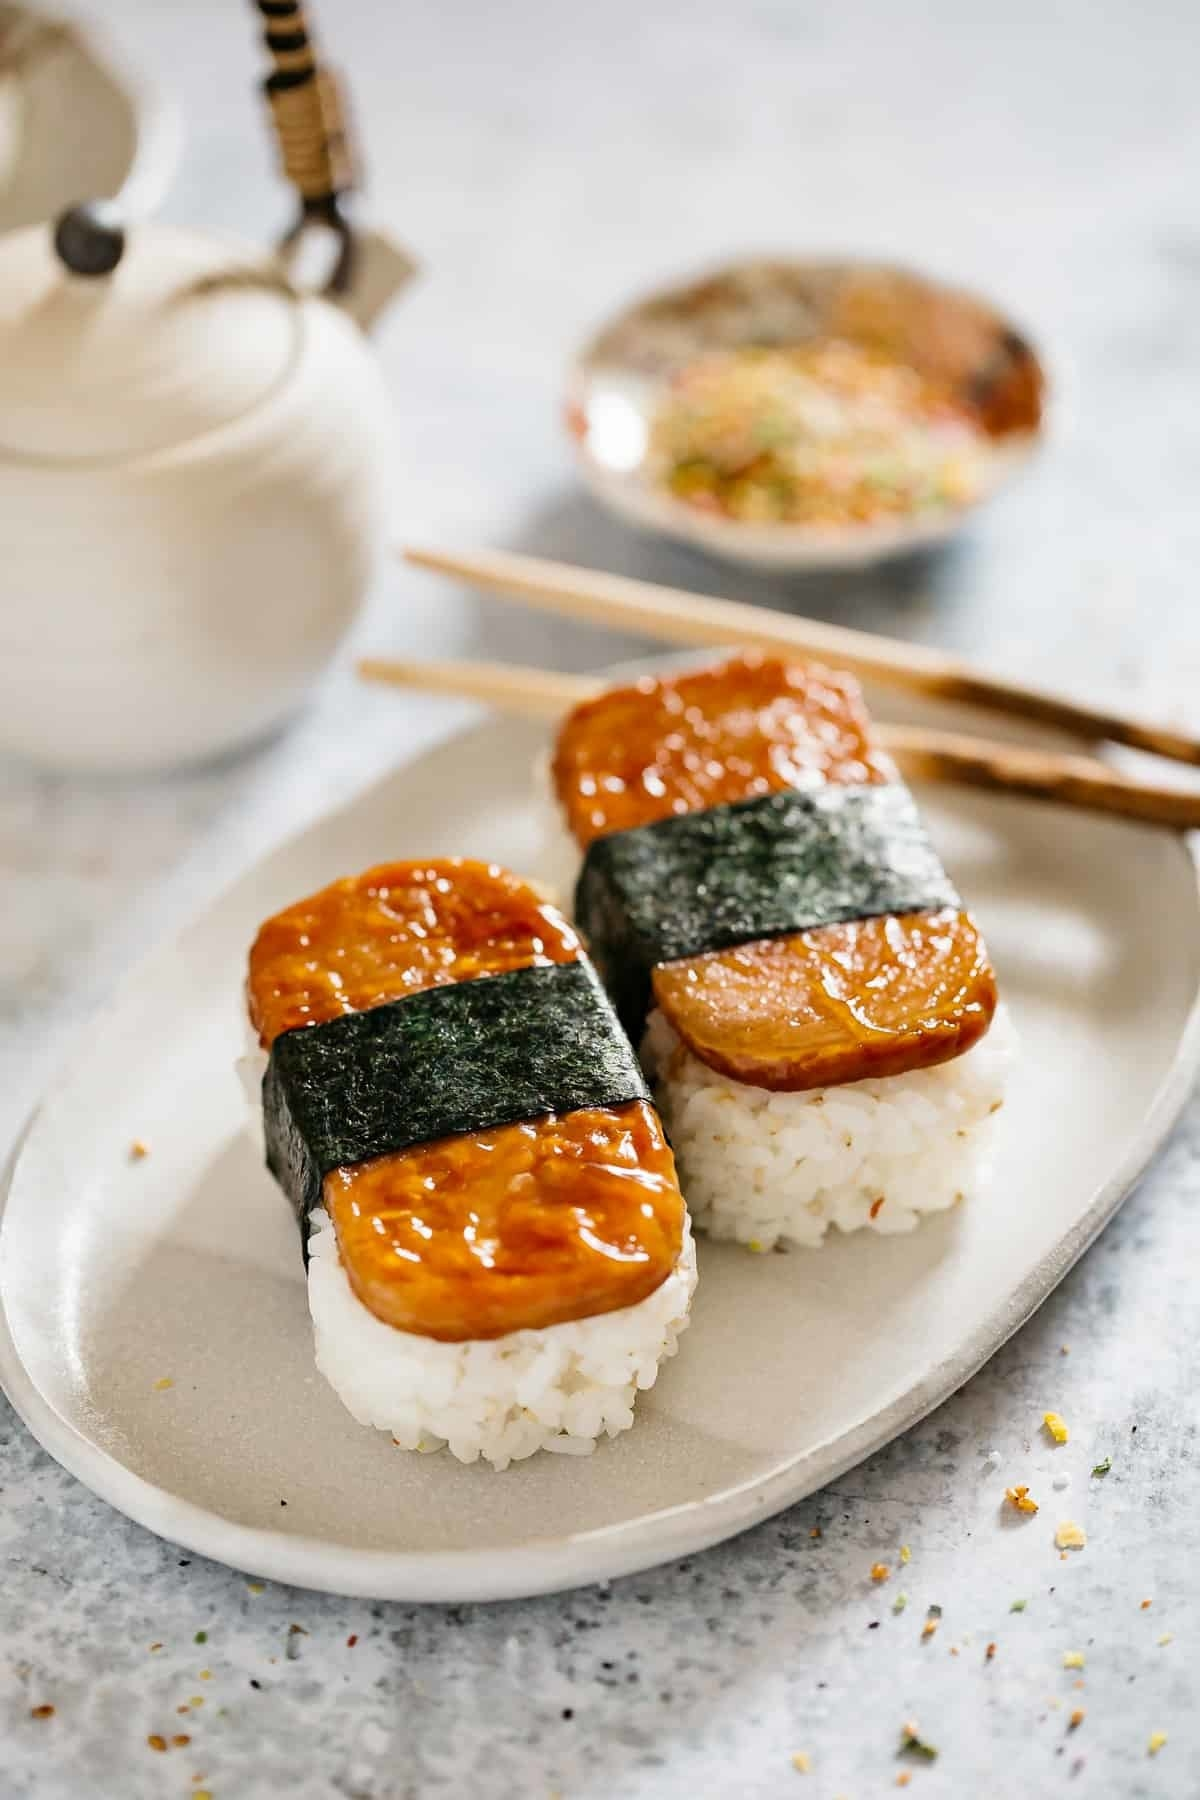 Two slices of spam sit atop thick piles of rice and are tied together with a strip of crisp seaweed.